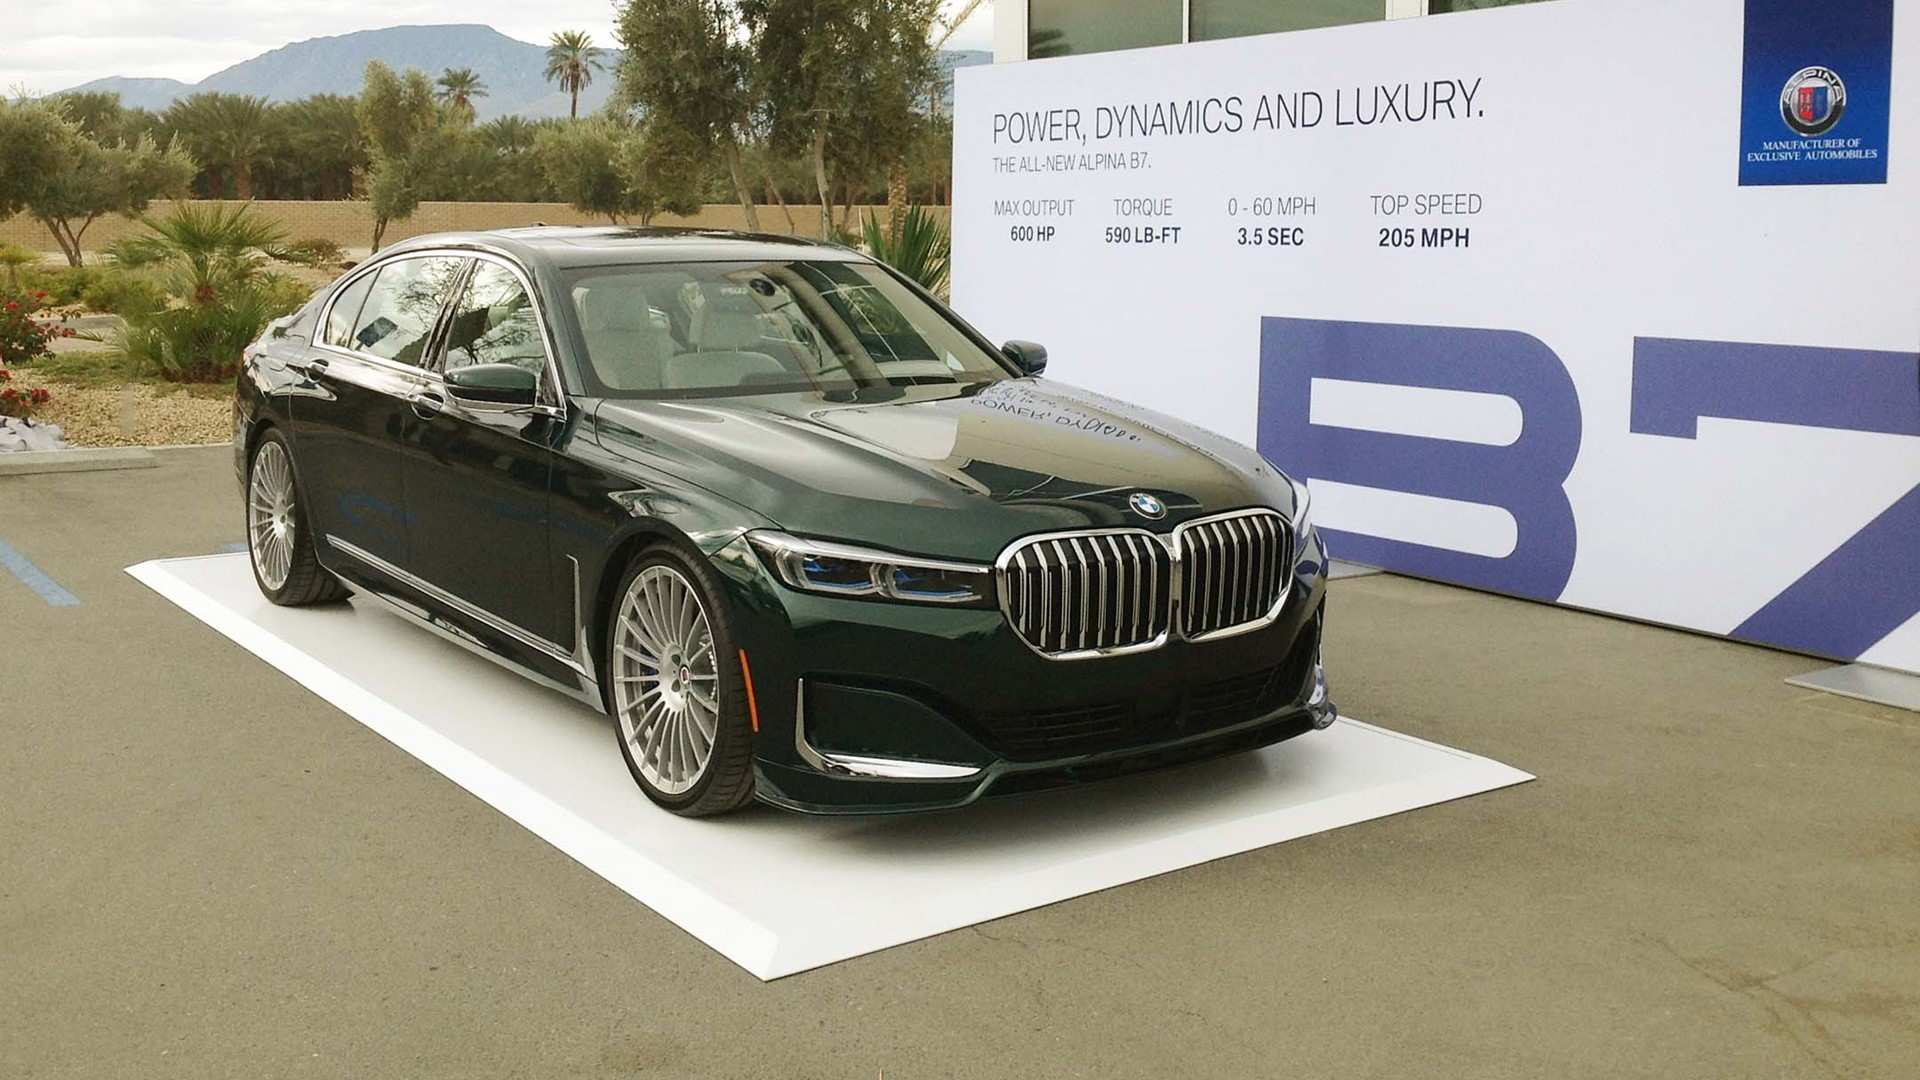 24 New BMW B7 Alpina 2020 Price Spy Shoot with BMW B7 Alpina 2020 Price